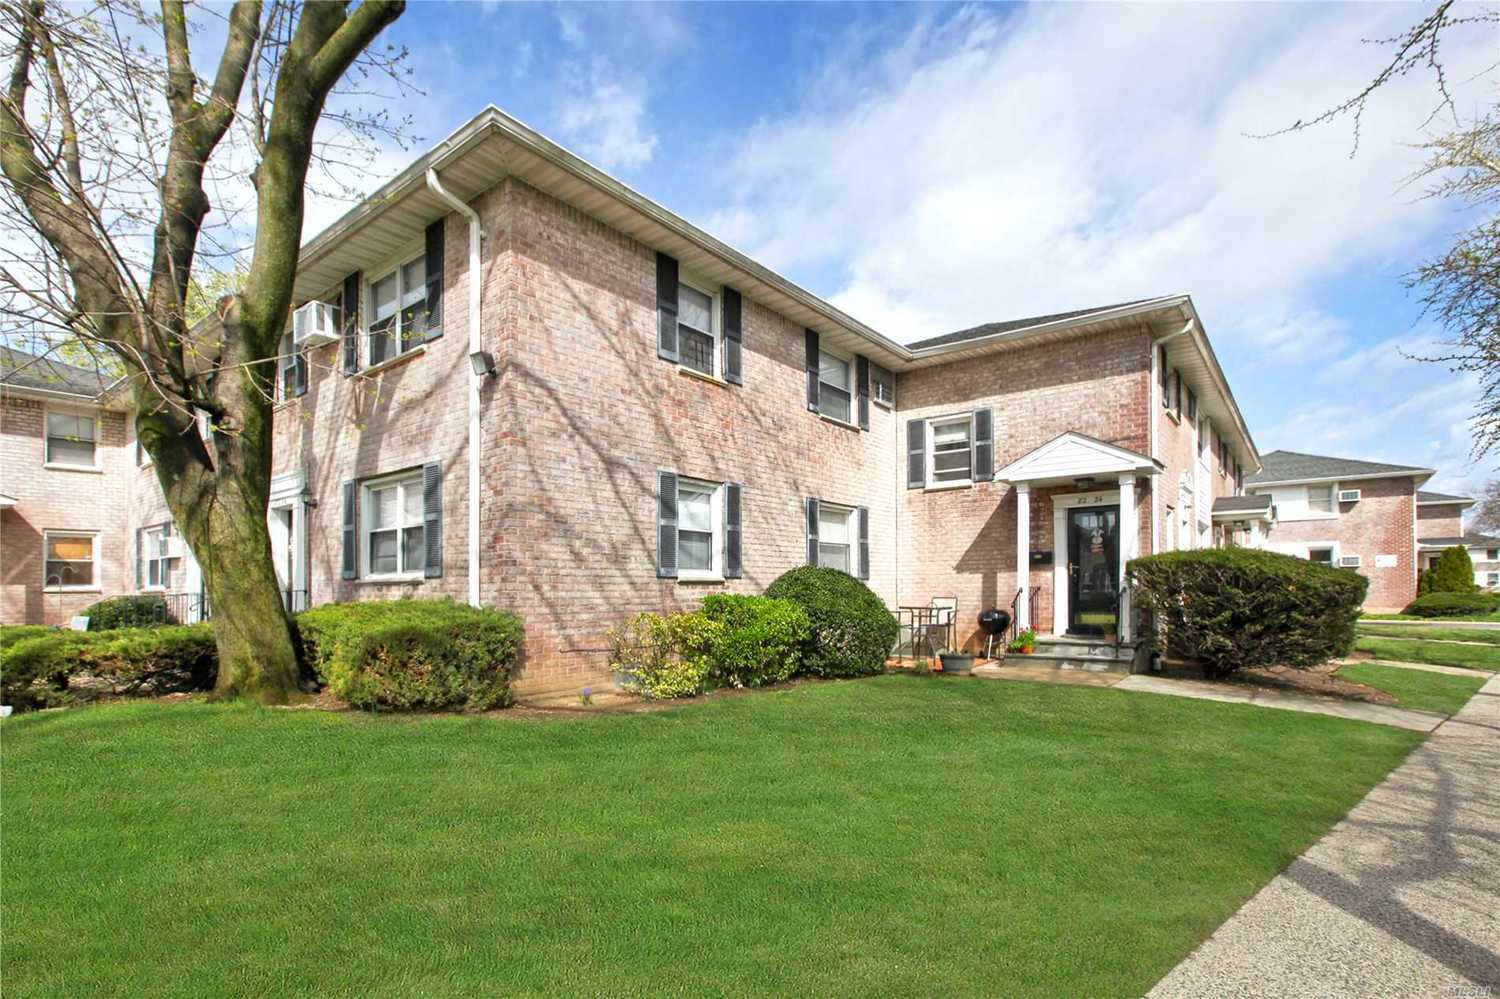 1500x1000 - Langdale Gardens Apartments For Rent Ny